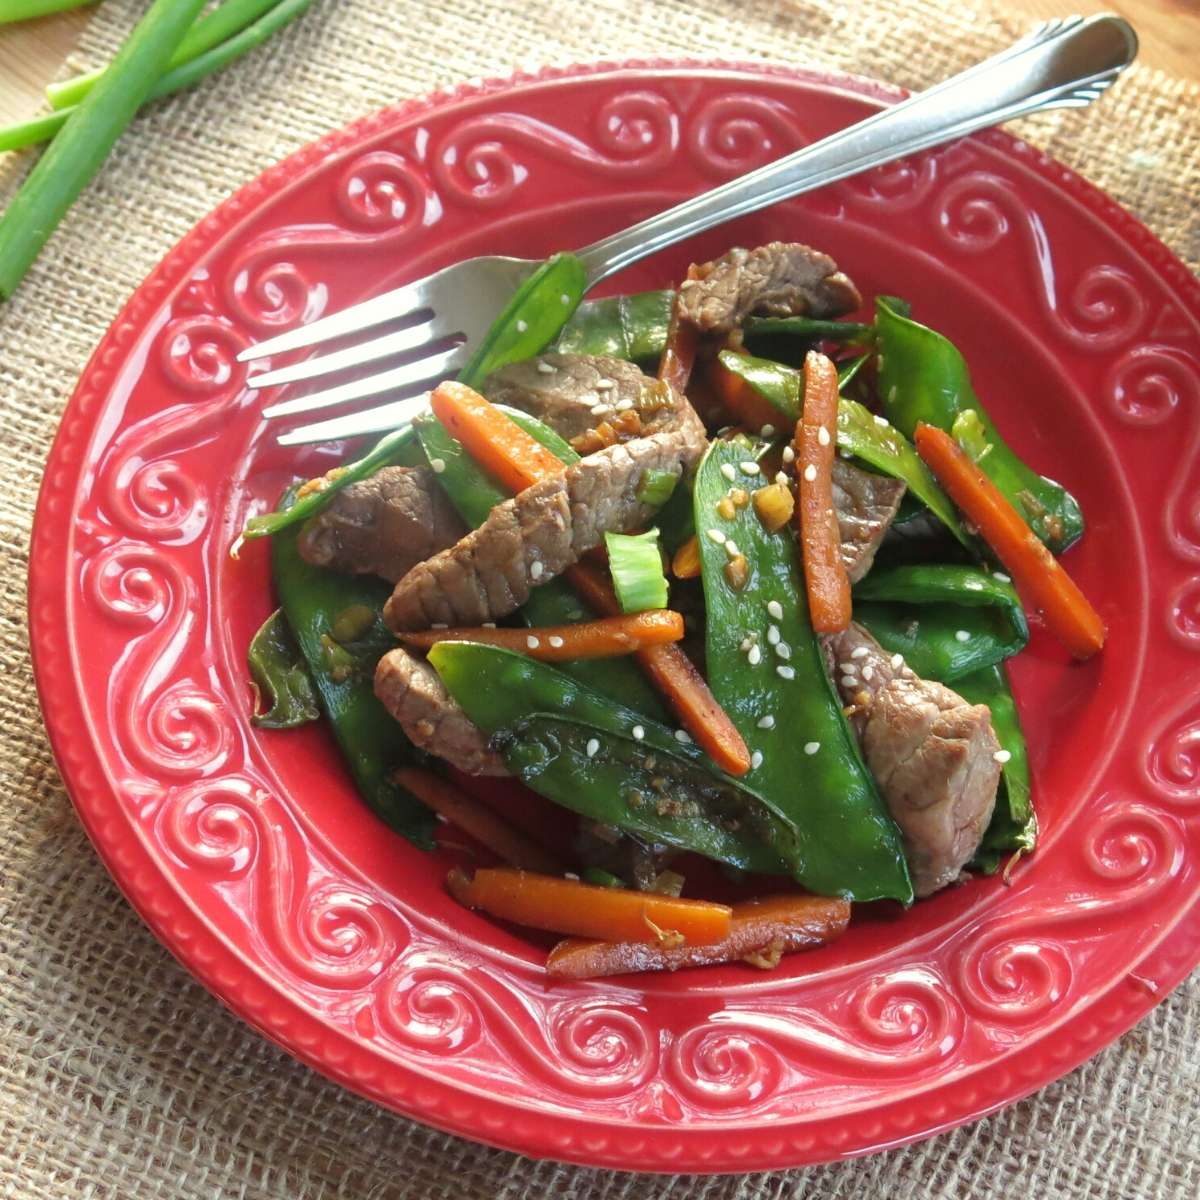 Sesame beef stir fry on plate with fork